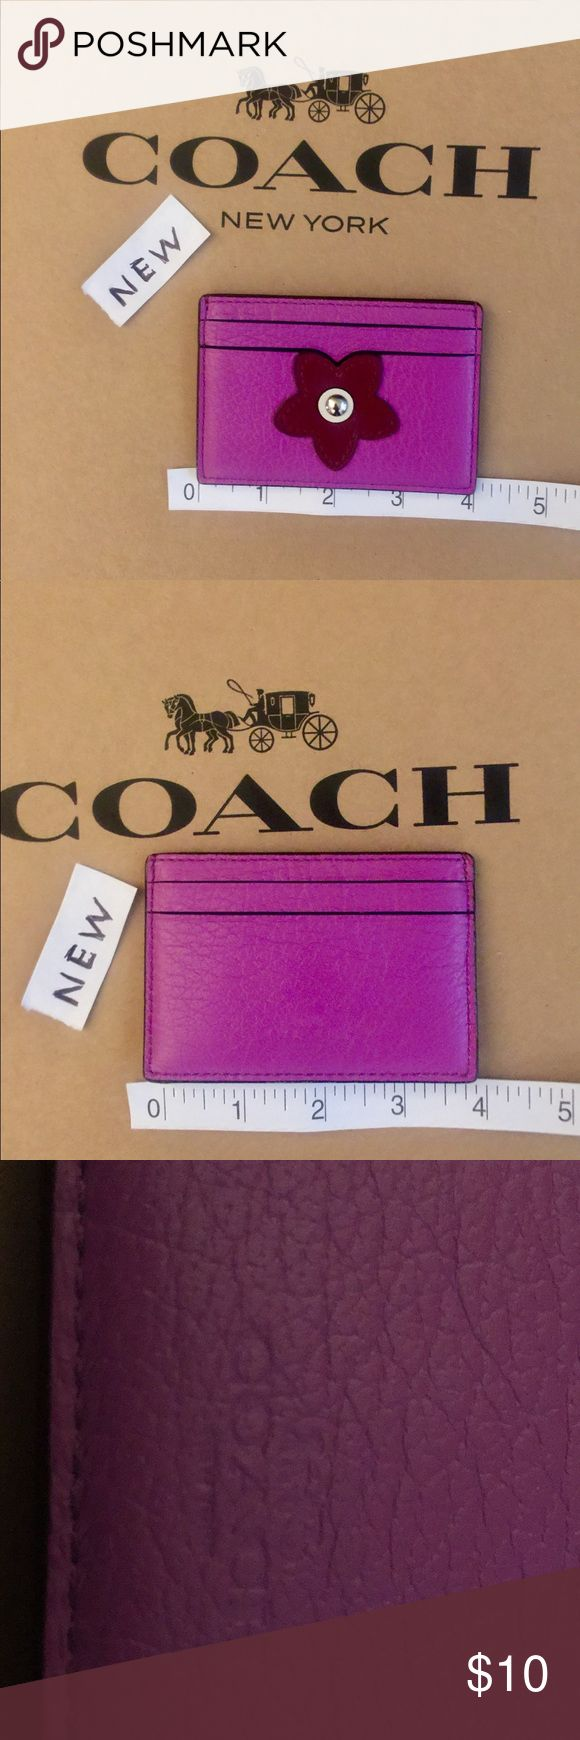 NEW Coach Credit Card Holder NEW Coach Credit Card holder. No MSRP Tag. Unused. …